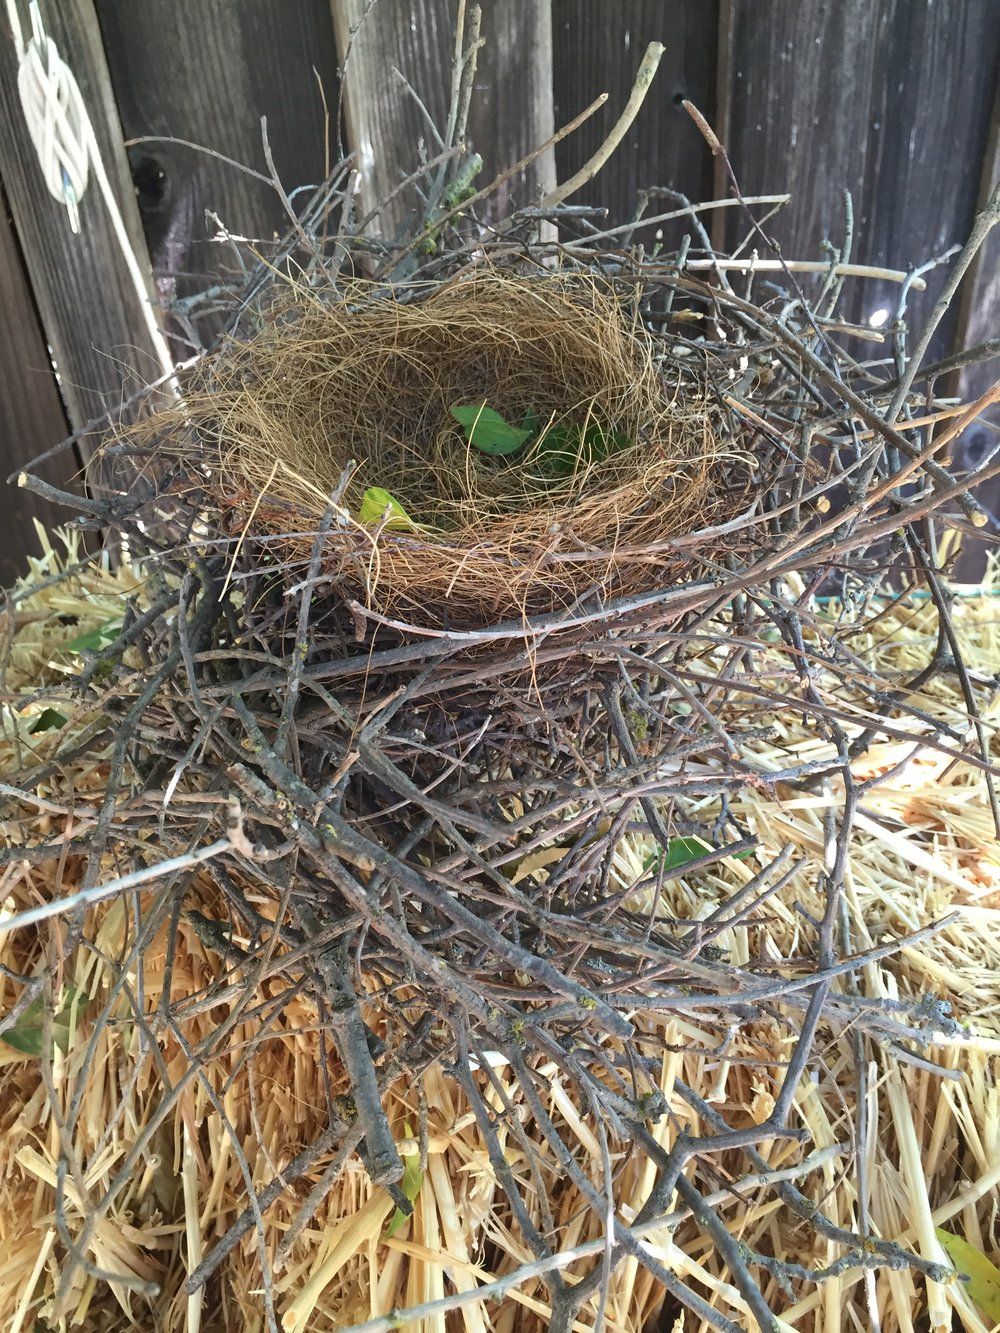 Scrub Jay nest found in the privet